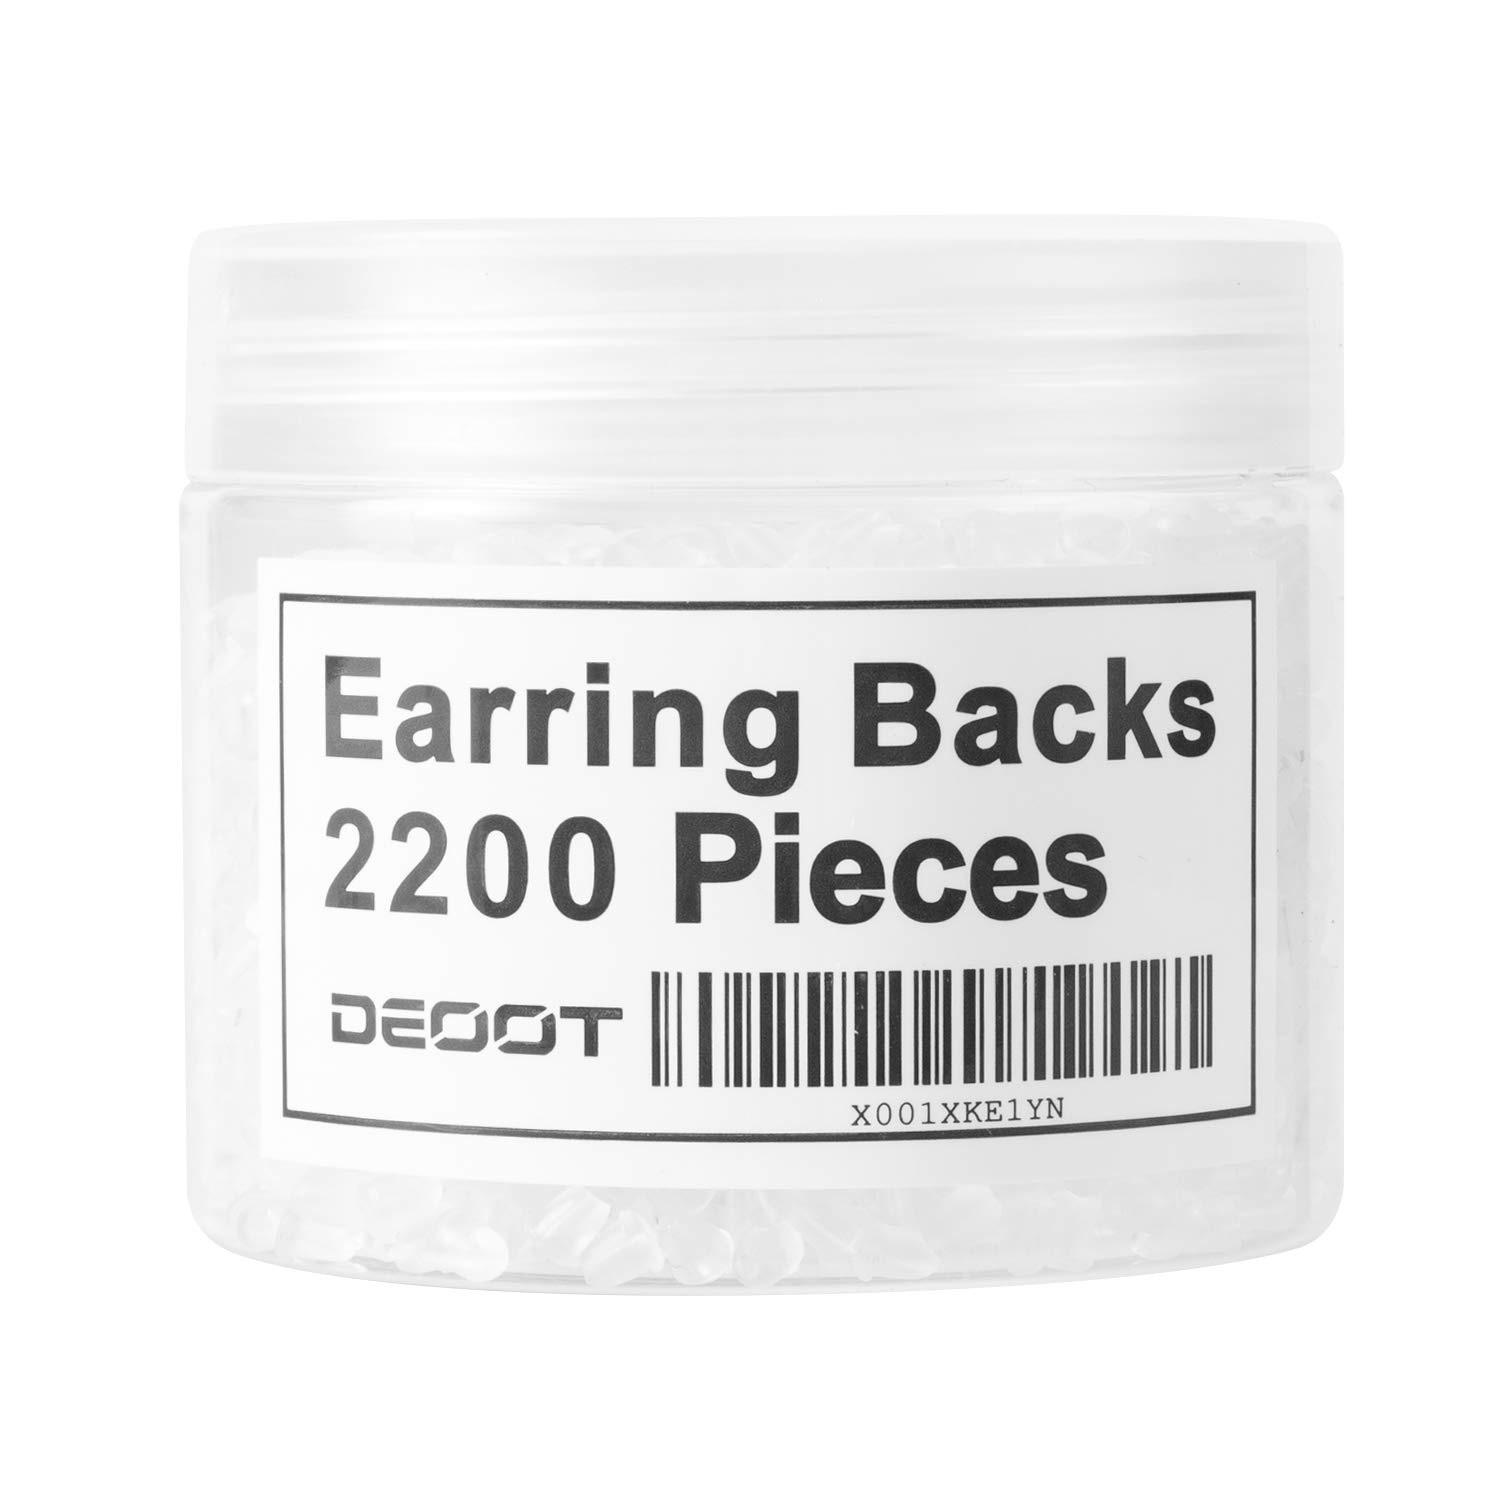 Earring Backs, Deoot 2200 Pieces Silicone Earring Backings Lifters Soft Clear Ear Safety Back Pads Backstops Bullet Clutch Stopper Replacement for Fish Hook Earrings, Studs Hoops Deoot-earringbacks-a-1